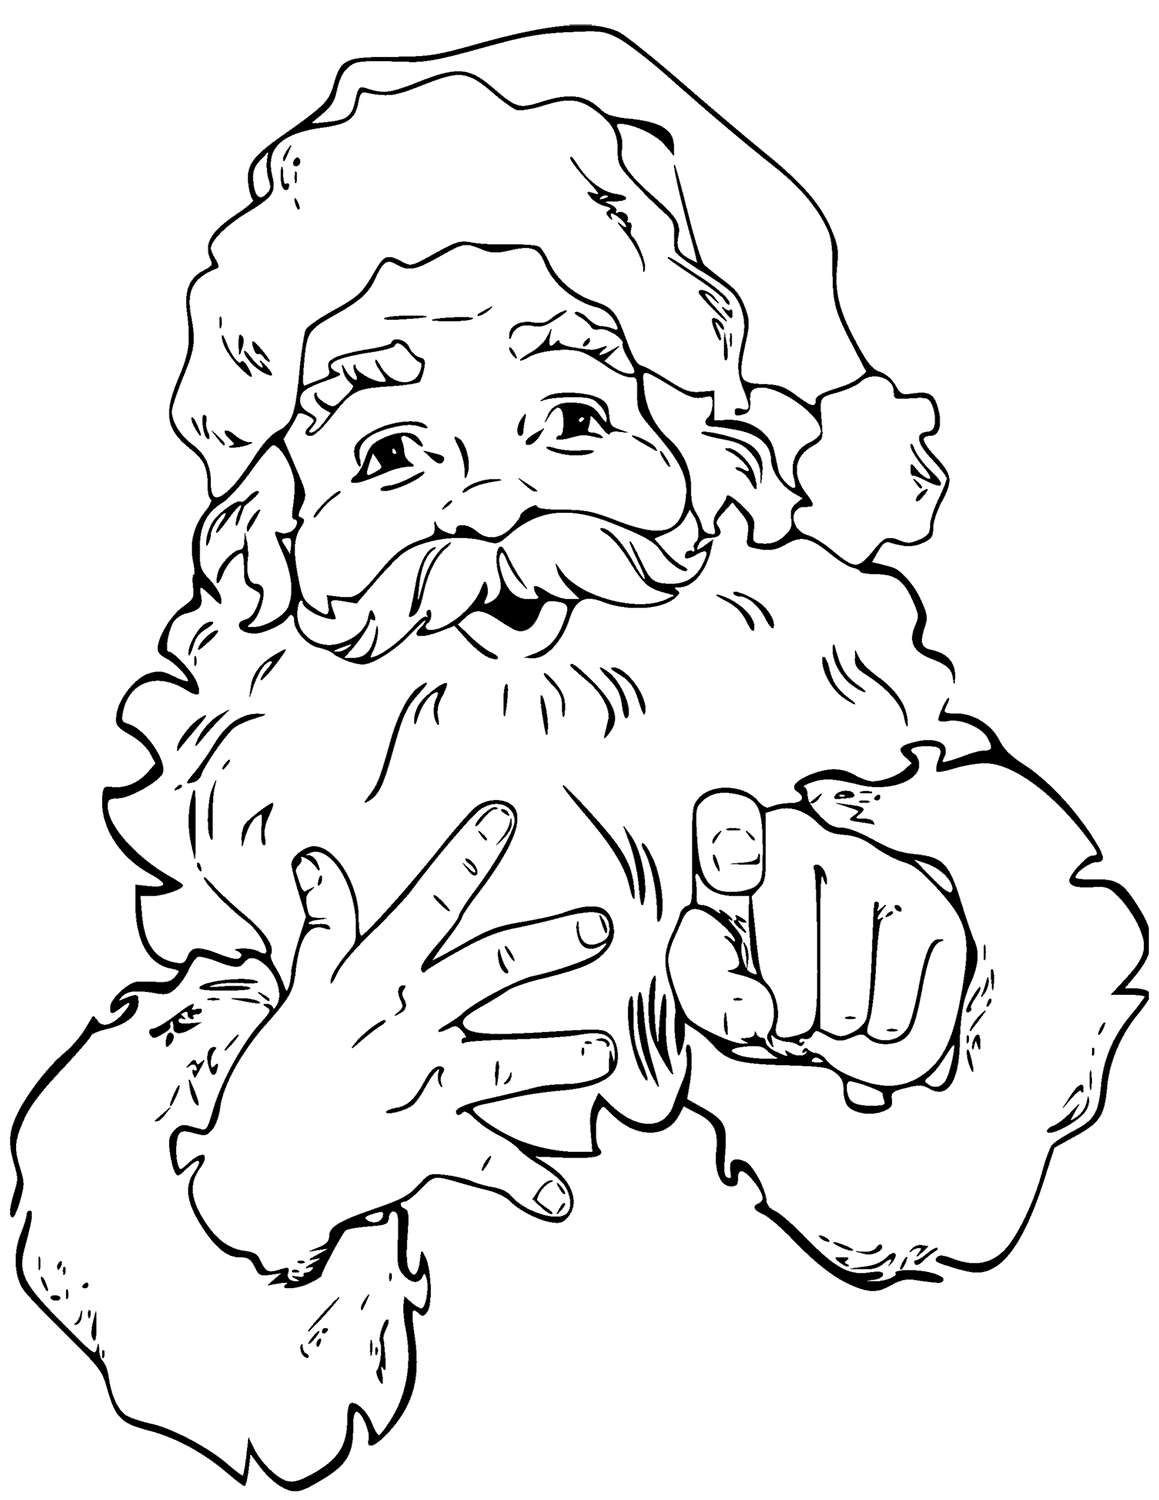 Balboa Island Christmas Coloring Contest - Luxury Real Estate - Steve Roose and Greg Earl